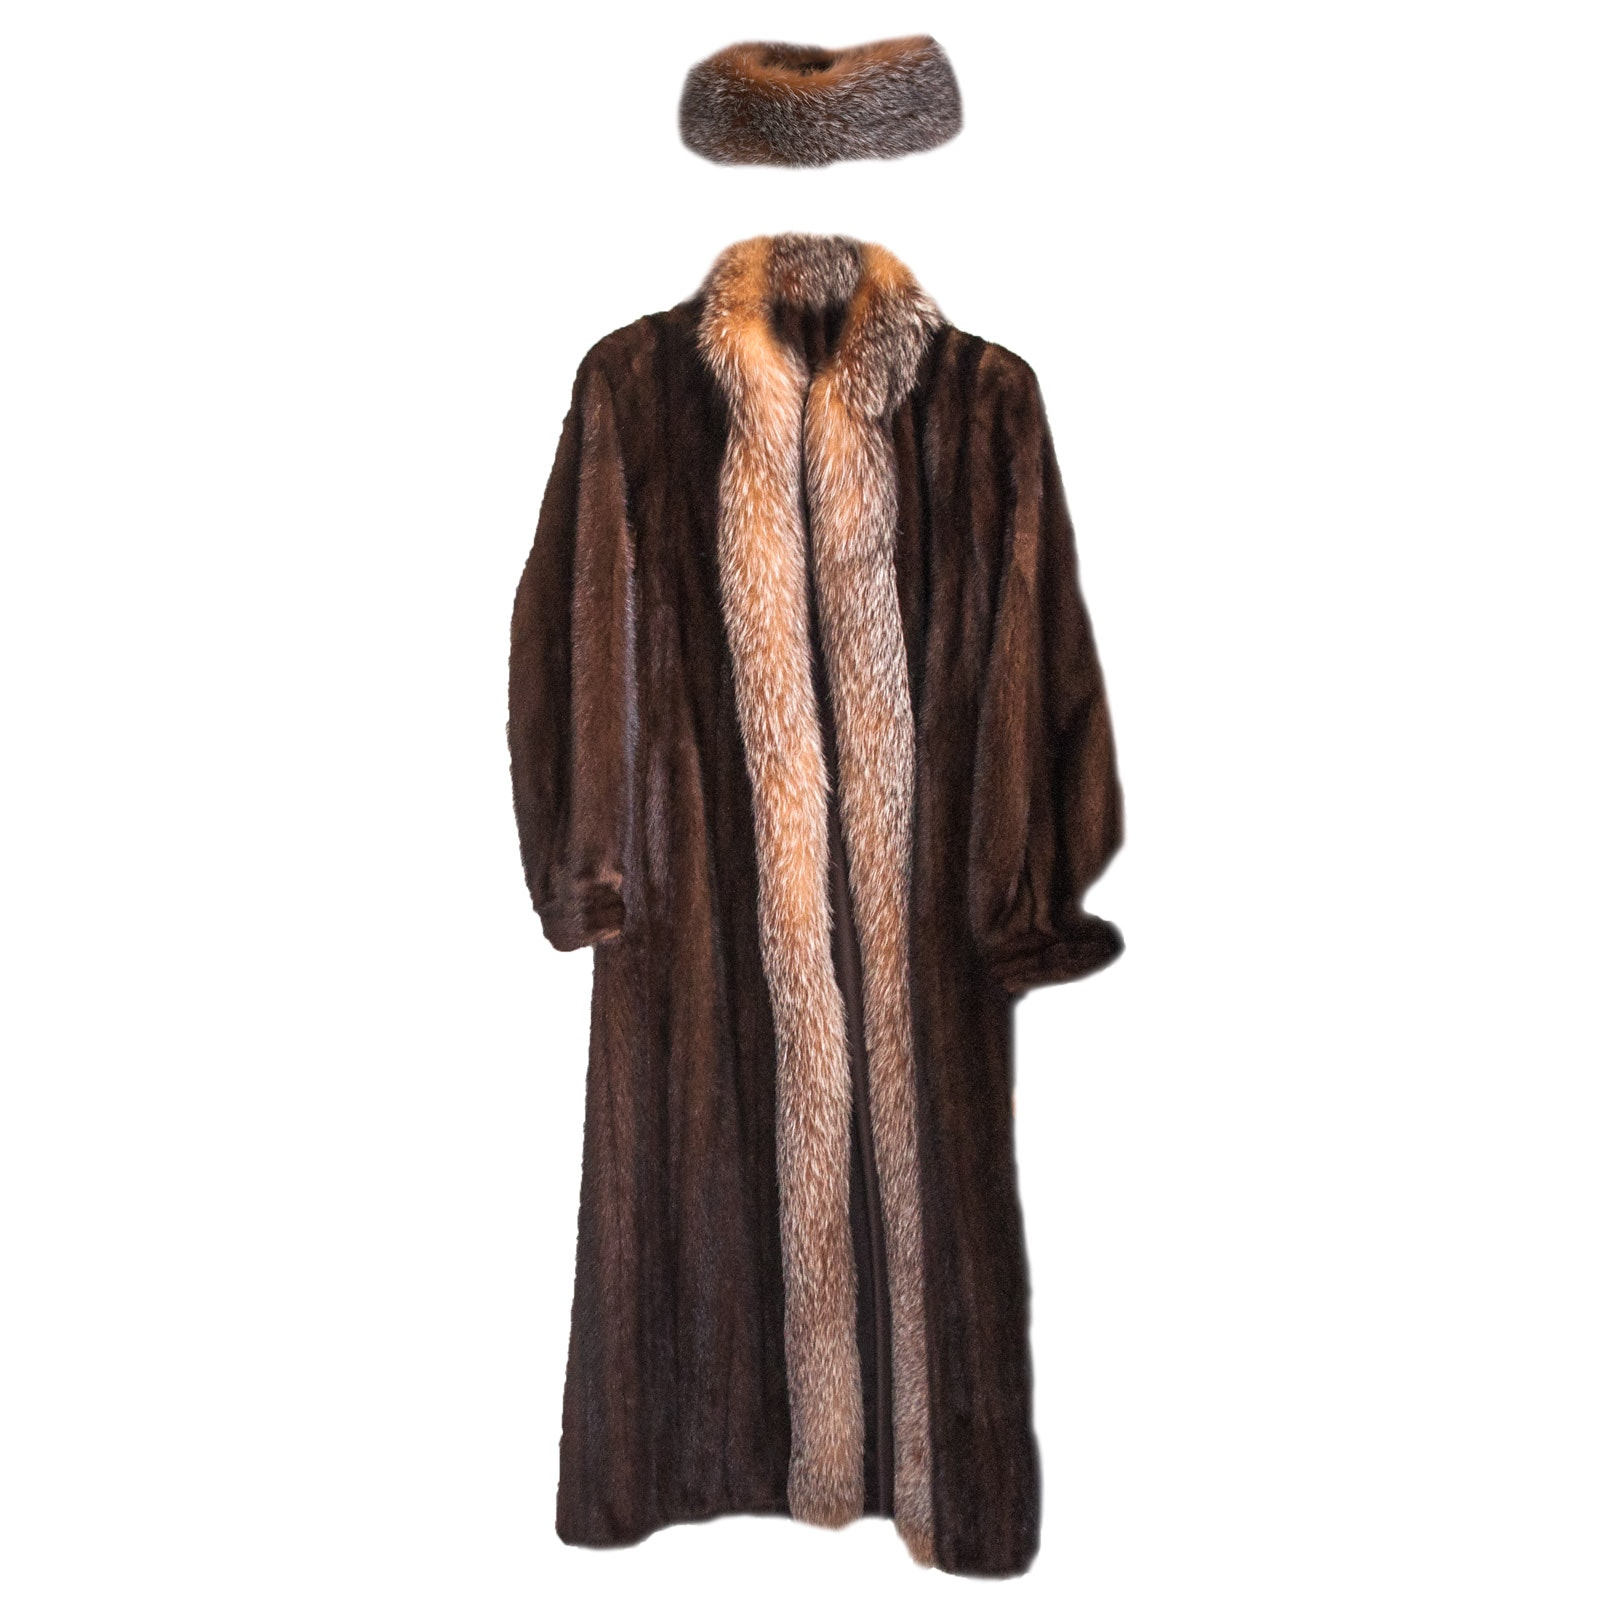 Kotsovos Furs Mahogany Mink Coat with Fox Fur Trim and Collar by Kotsovos